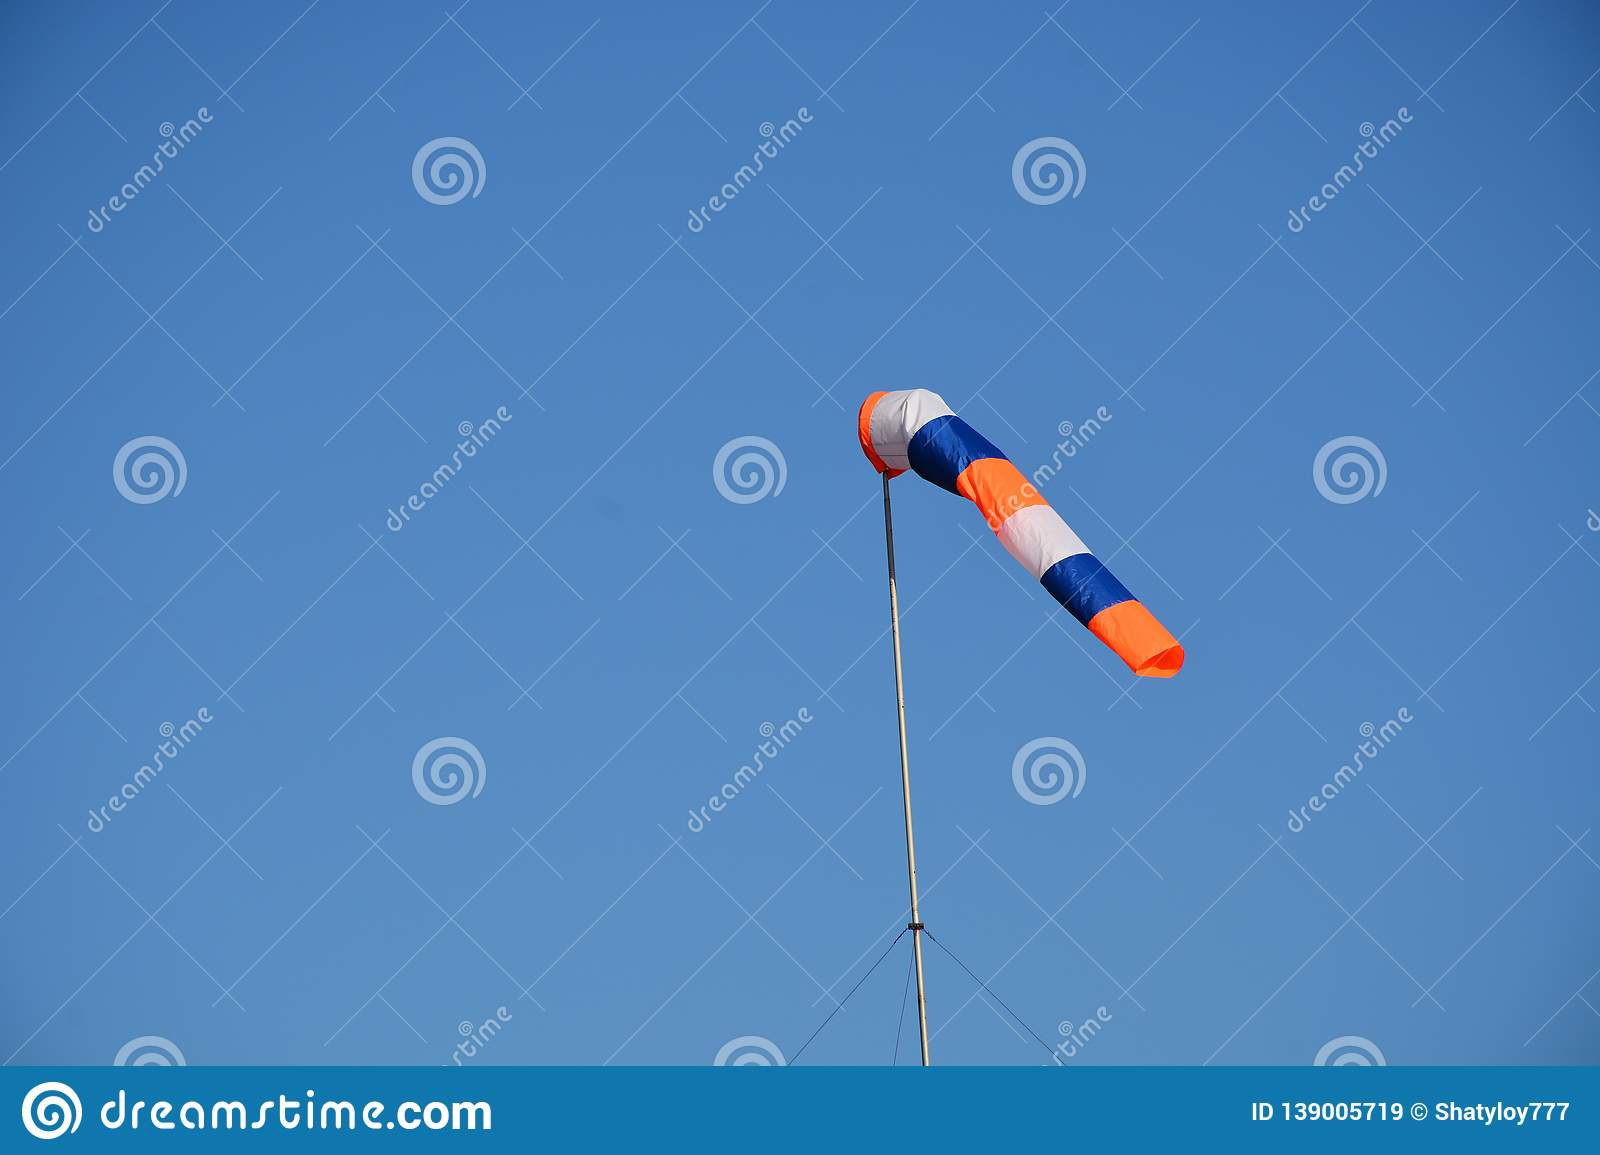 Cone fabric intended to indicate the direction and approximate wind velocity